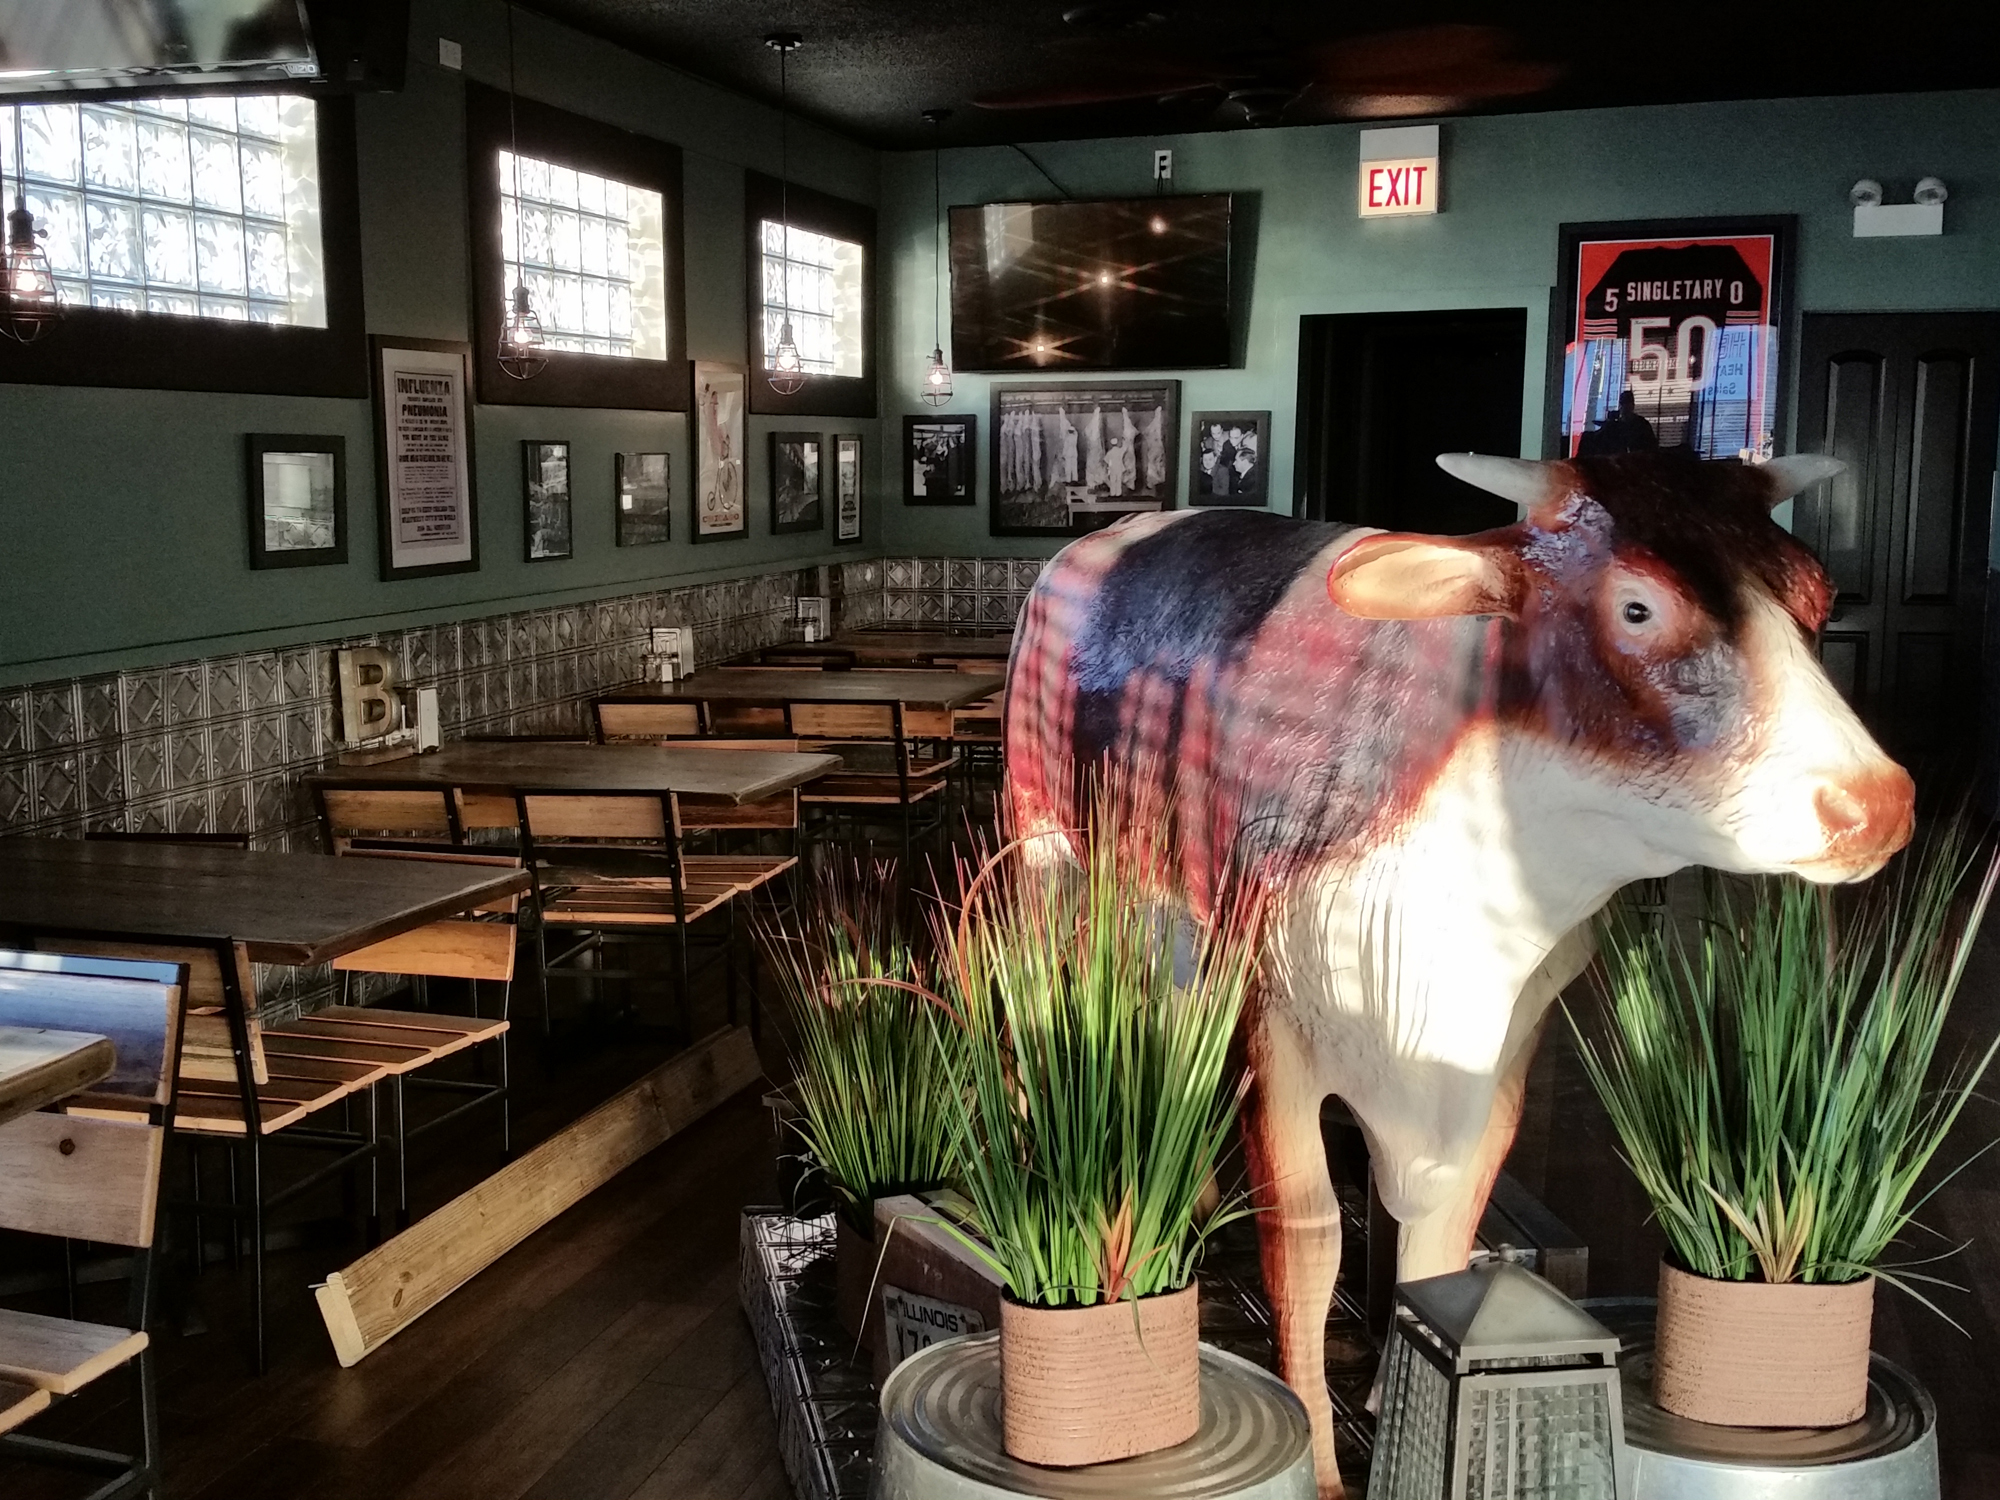 SEE BEEFBELLY'S REVOLUTIONARY TAKE ON ITALIAN BEEF, OPENING TUESDAY